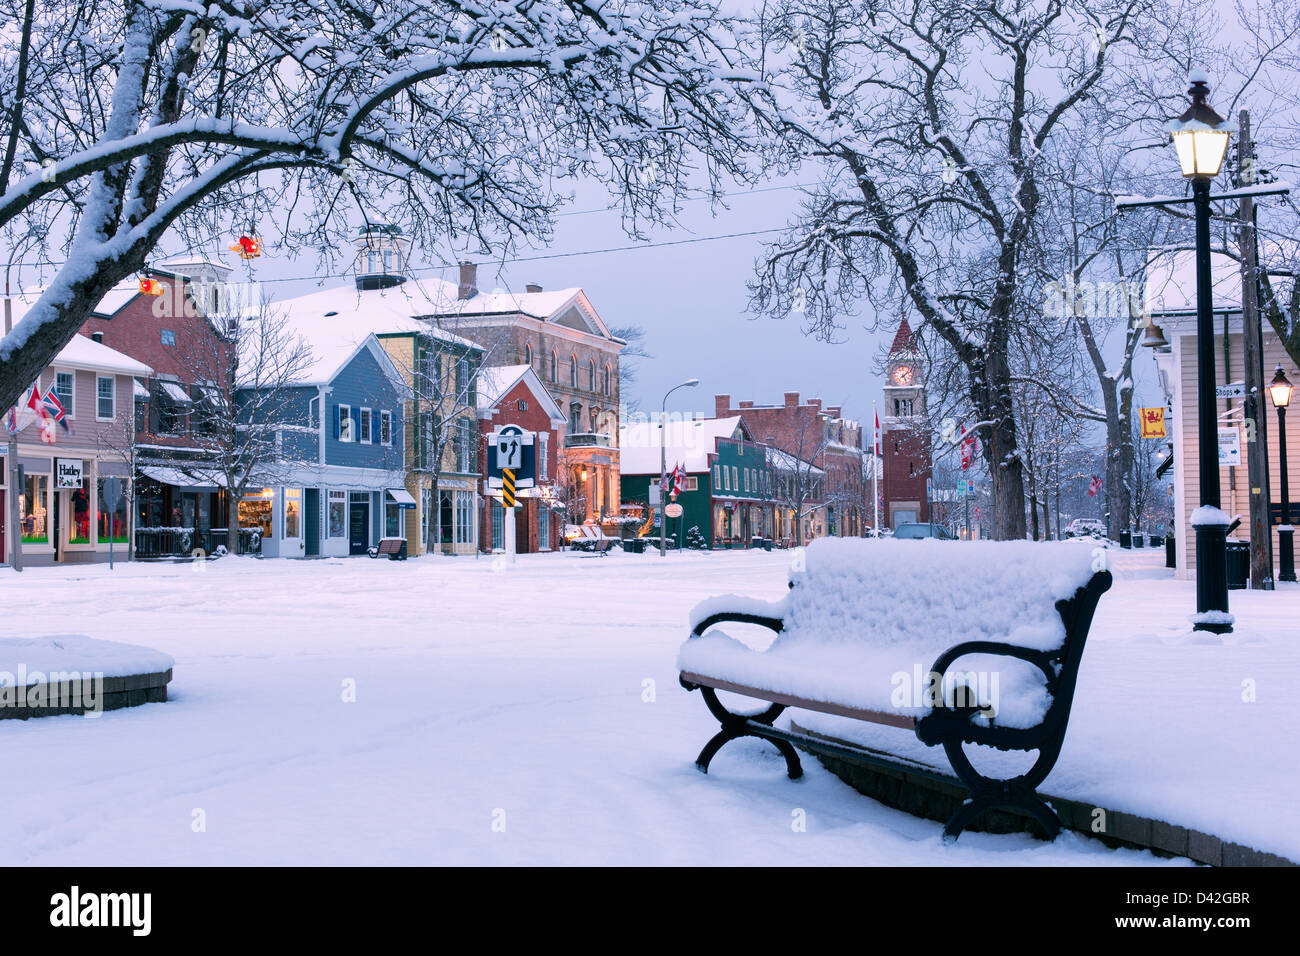 Canada,Ontario,Niagara-on-the-Lake,Queen Street, early winter morning, park bench covered in snow showing a main Stock Photo